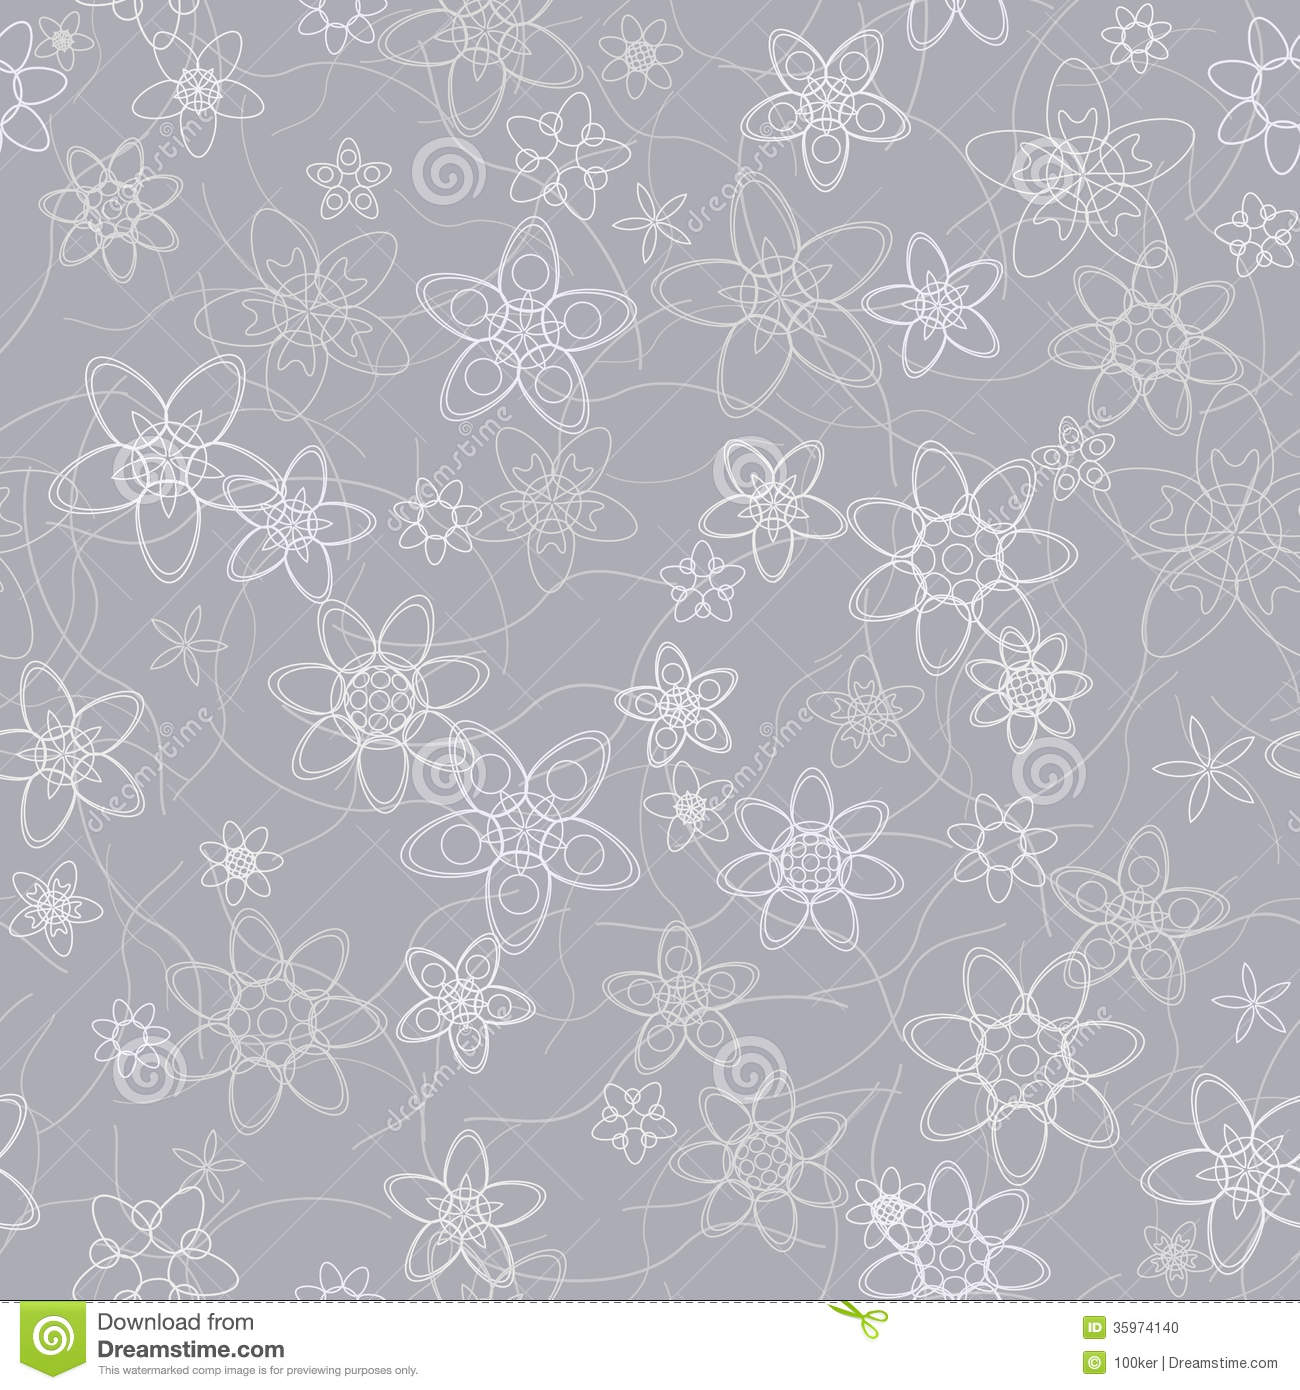 Abstract Flowers Floral Grey Seamless Background Stock Photo